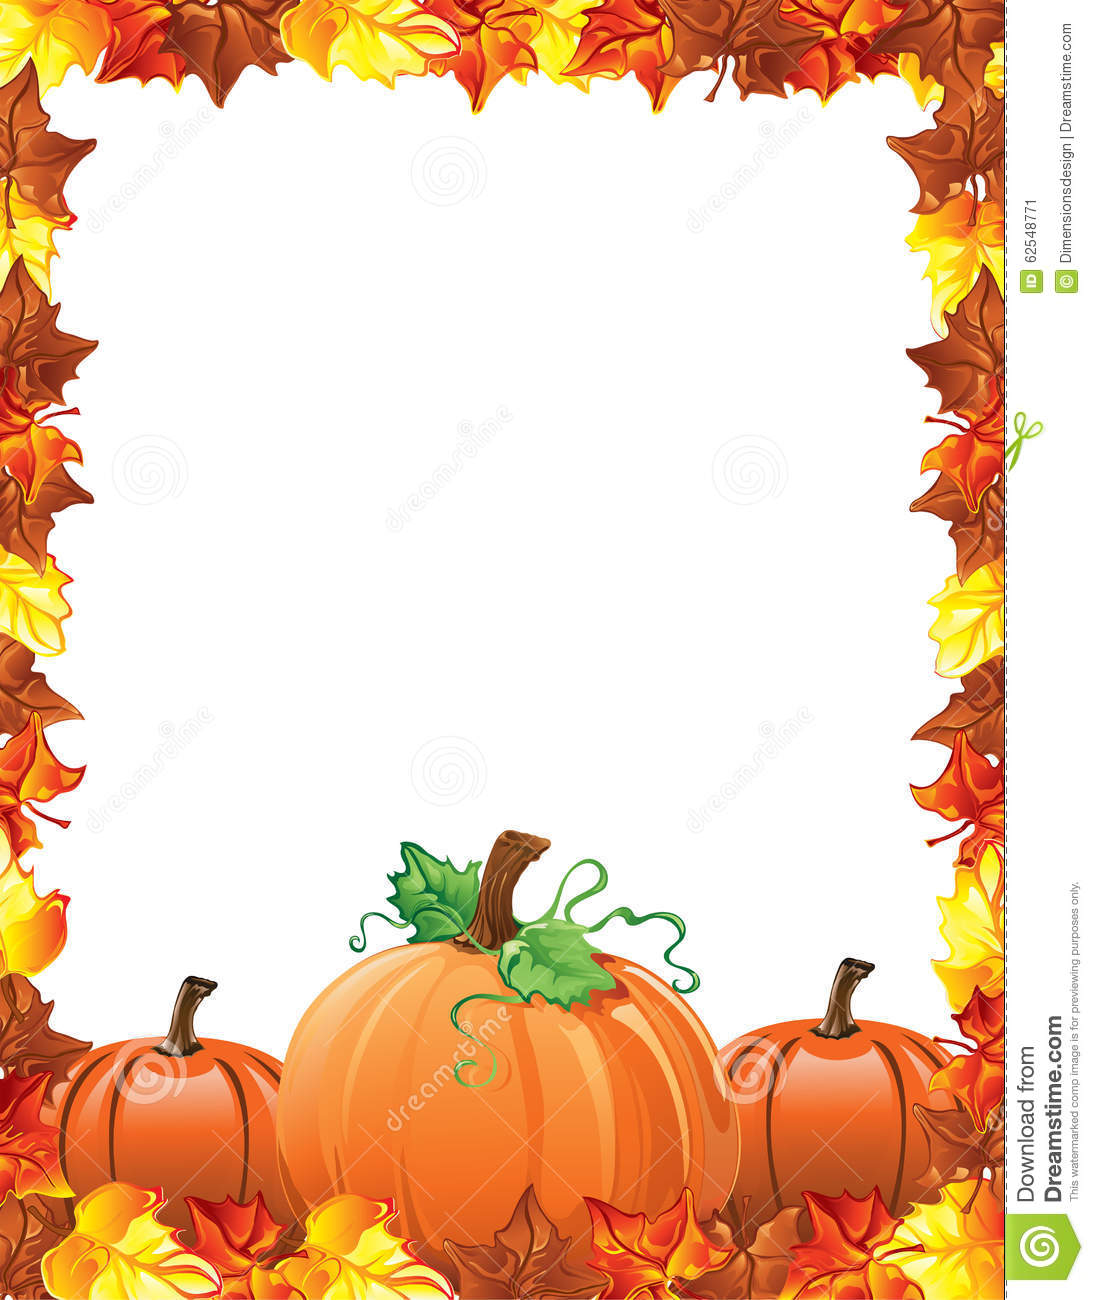 Fall Leaves And Pumpkins Border Stock Vector - Image: 62548771